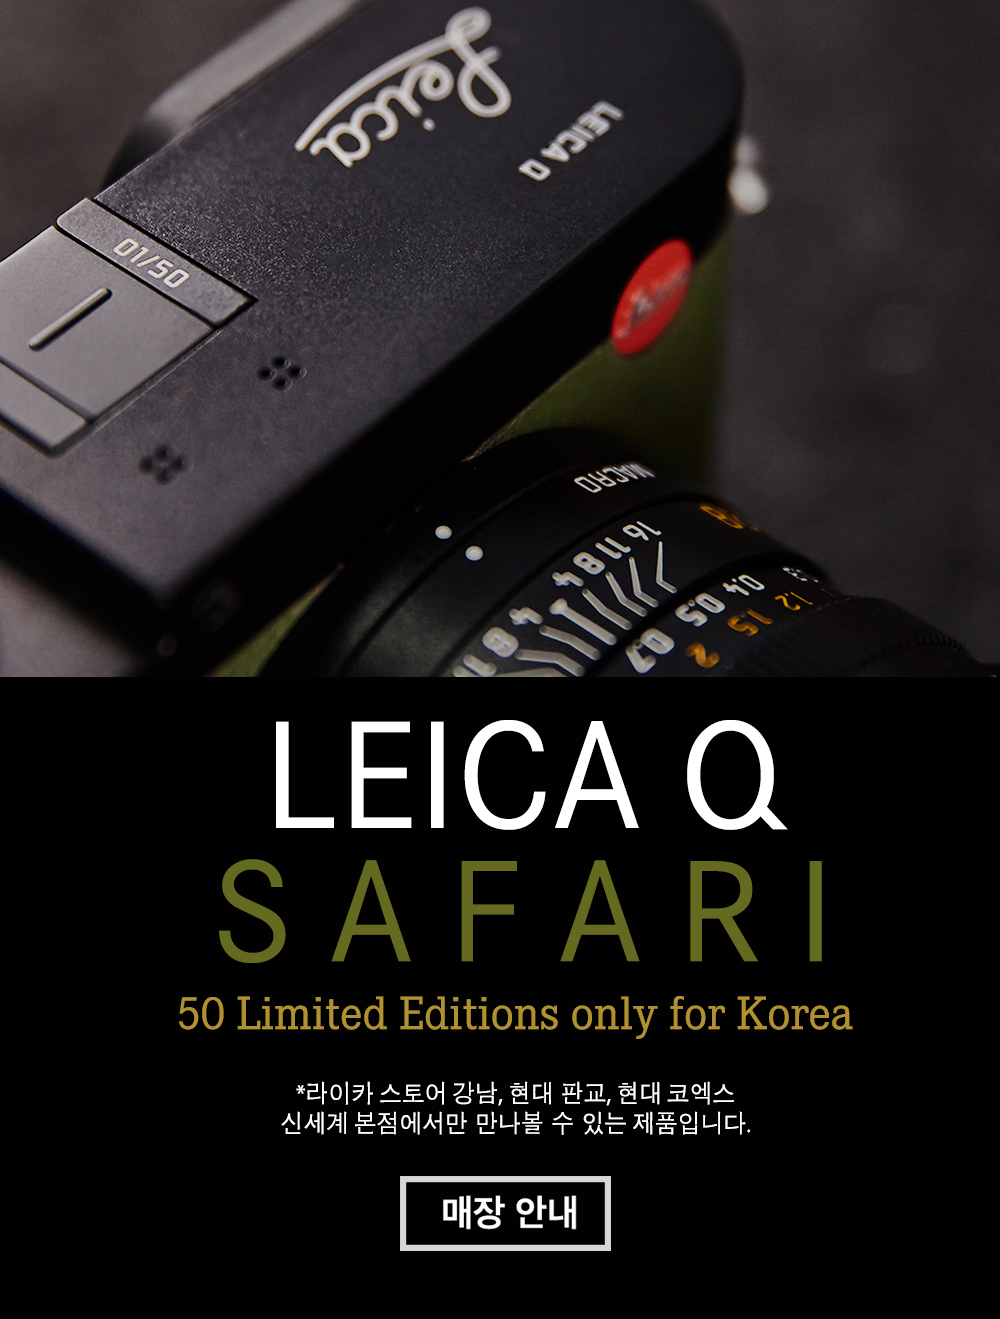 leica-q-safari-limited-edition-camera